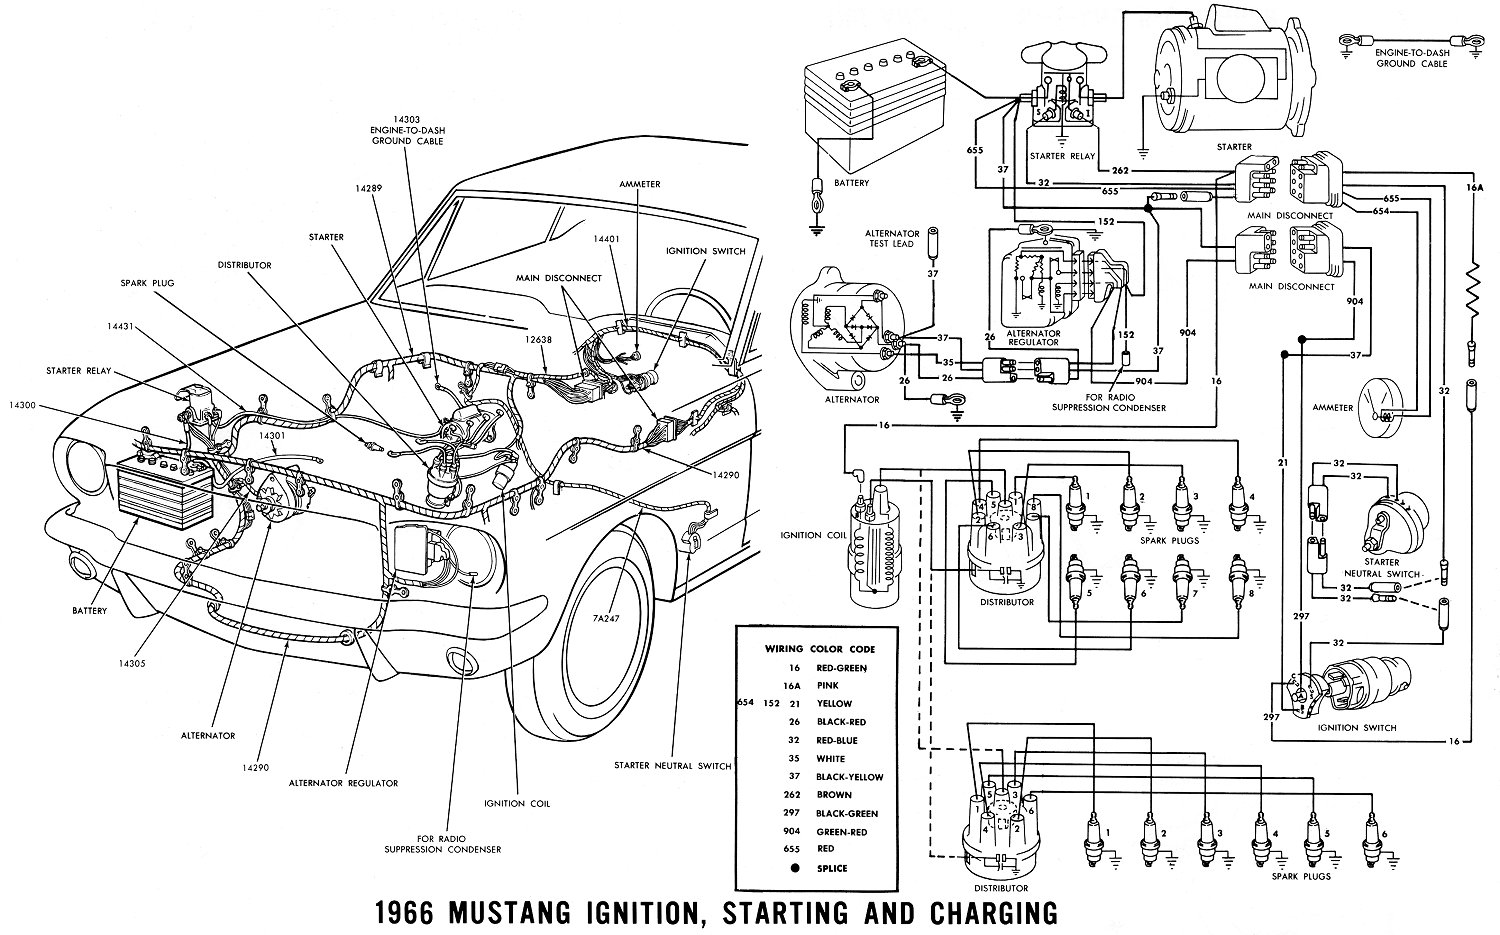 1965 wiring that goes to starter solenoid with 1971 Ford Mustang Wiring Harness on 1969 Cadillac Deville Vacuum Diagram besides Suggested Wiring Diagram Alternator further 1971 Ford Mustang Wiring Harness in addition Ford 5 4 Liter Engine Diagrams And Schematics furthermore 686489 Gas Gauge Wiring 3.